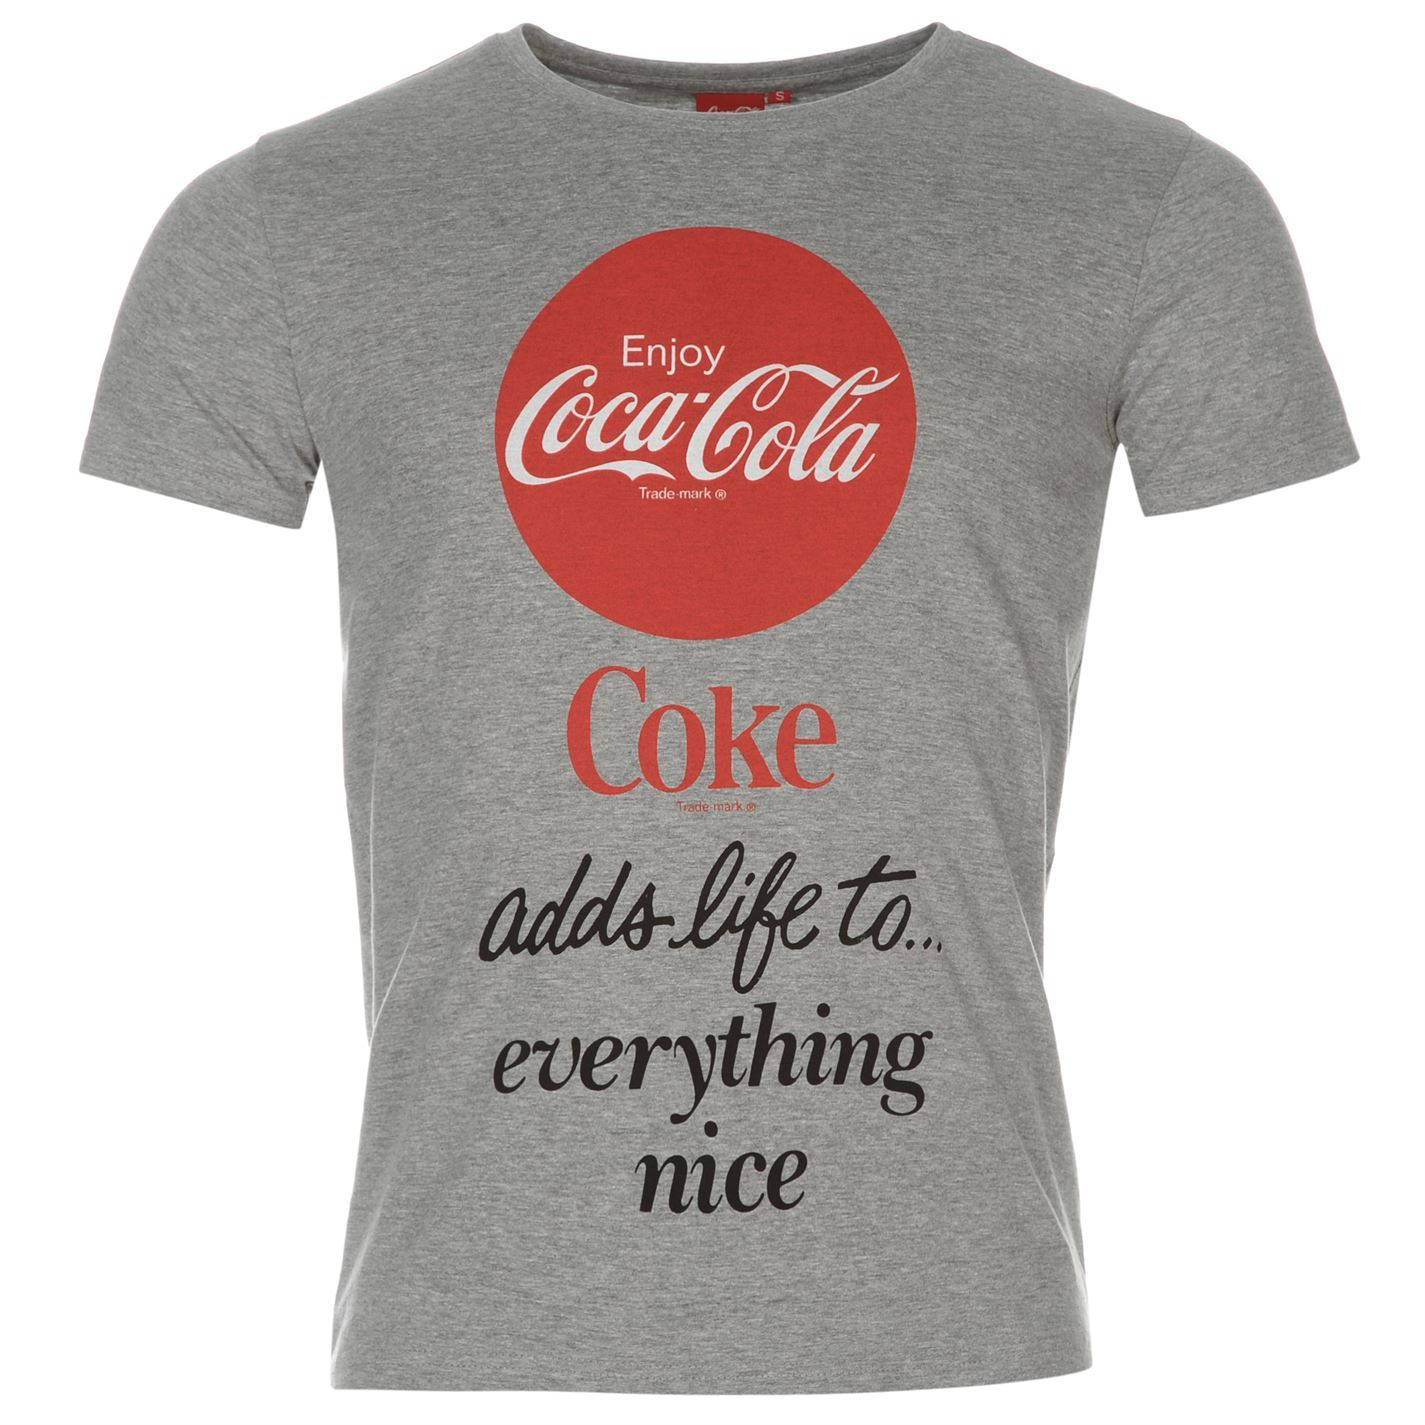 coca cola t shirt mens grey top tee shirt ebay. Black Bedroom Furniture Sets. Home Design Ideas